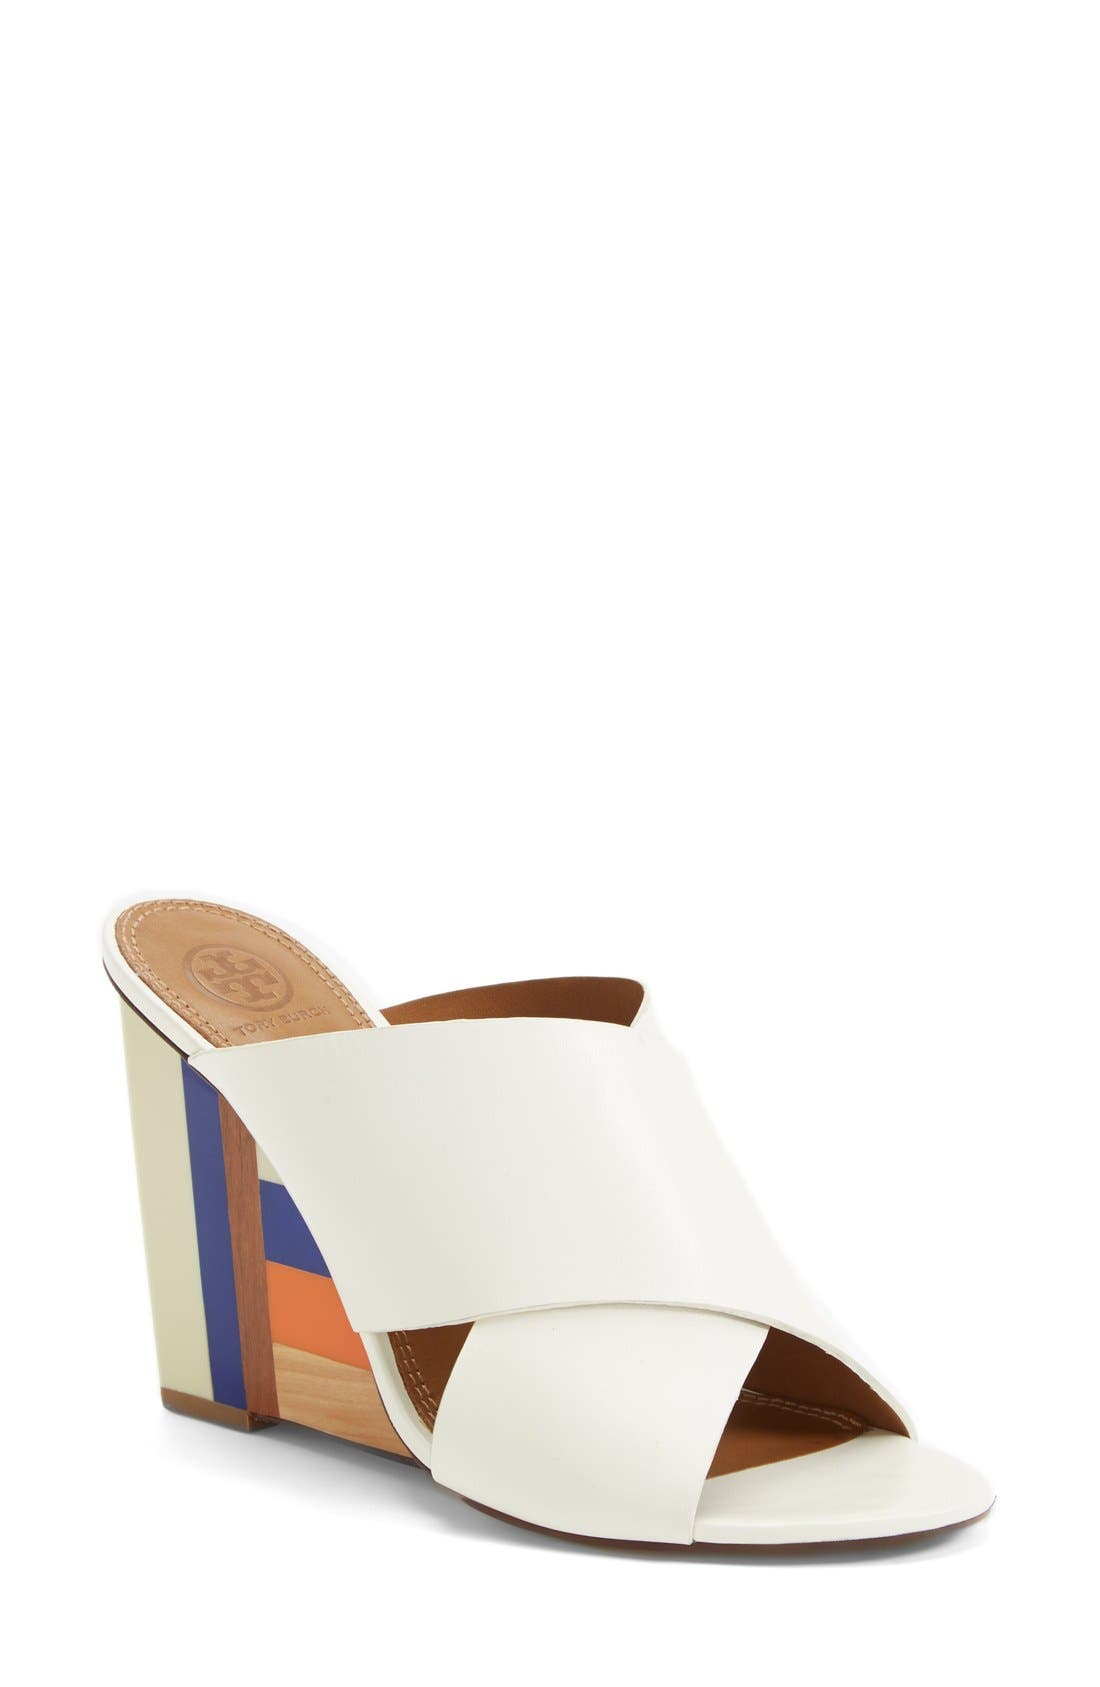 Alternate Image 1 Selected - Tory Burch 'Cube' Leather Crossover Strap Wedge Sandal (Women)